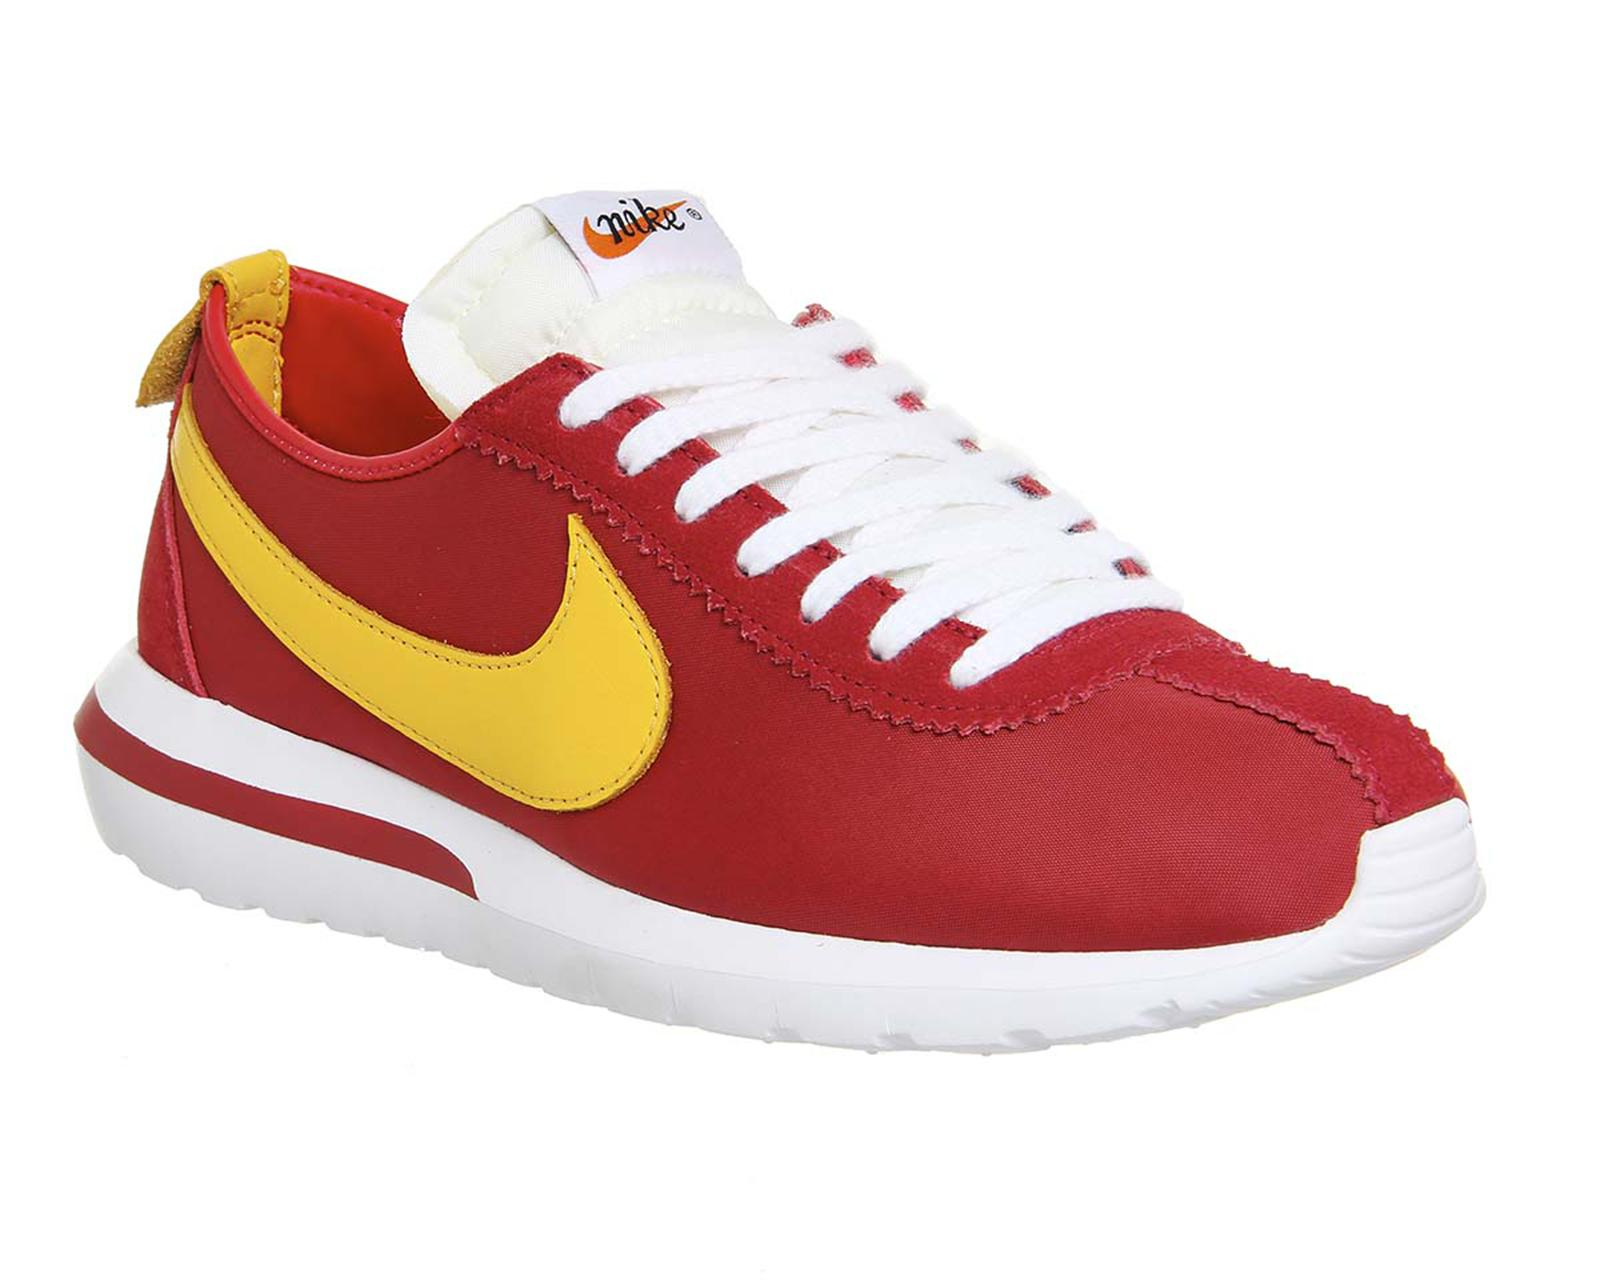 Lyst - Nike Roshe Cortez in Red for Men a85060b68